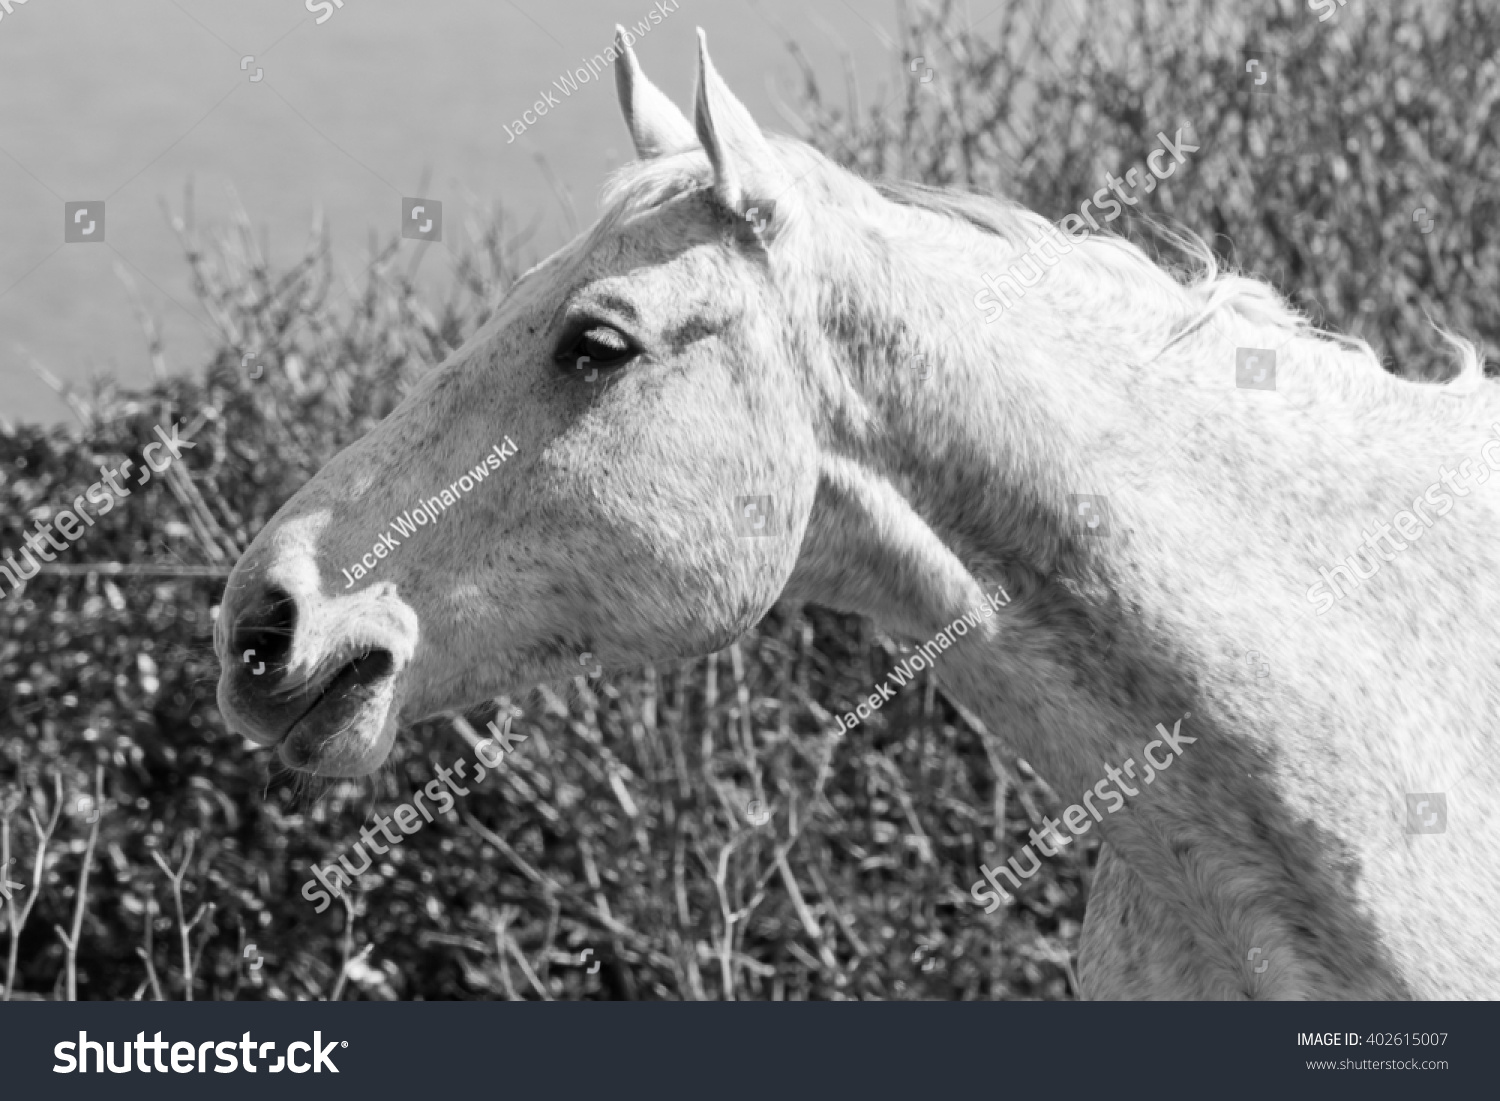 White horse head shot profile close up black and white photography